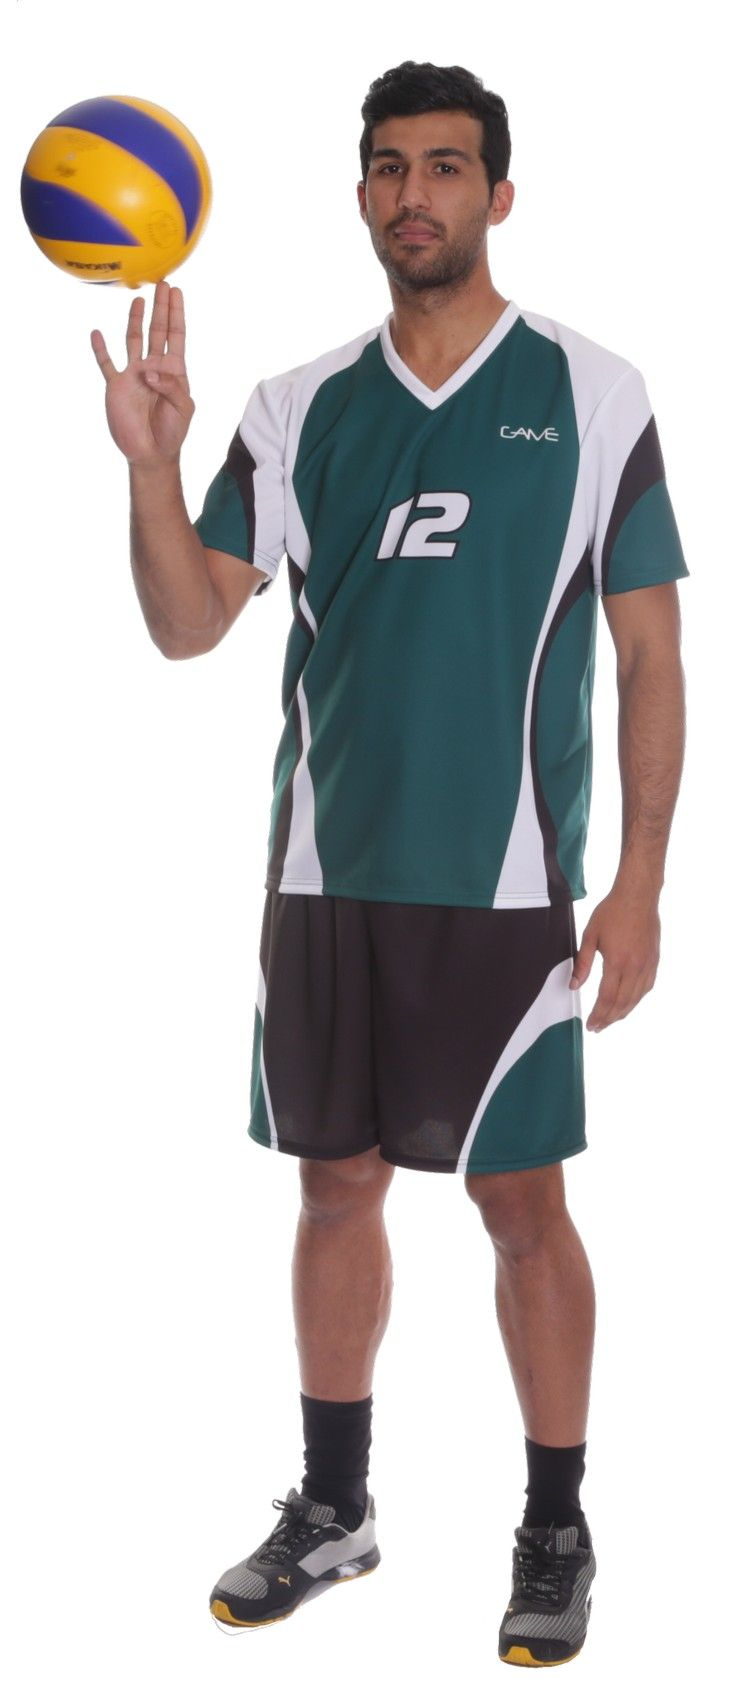 Mens Volleyball Uniforms Volleyball Volleyballuniforms Volleyballjerseys Volleyball Uniforms Mens Volleyball Volleyball